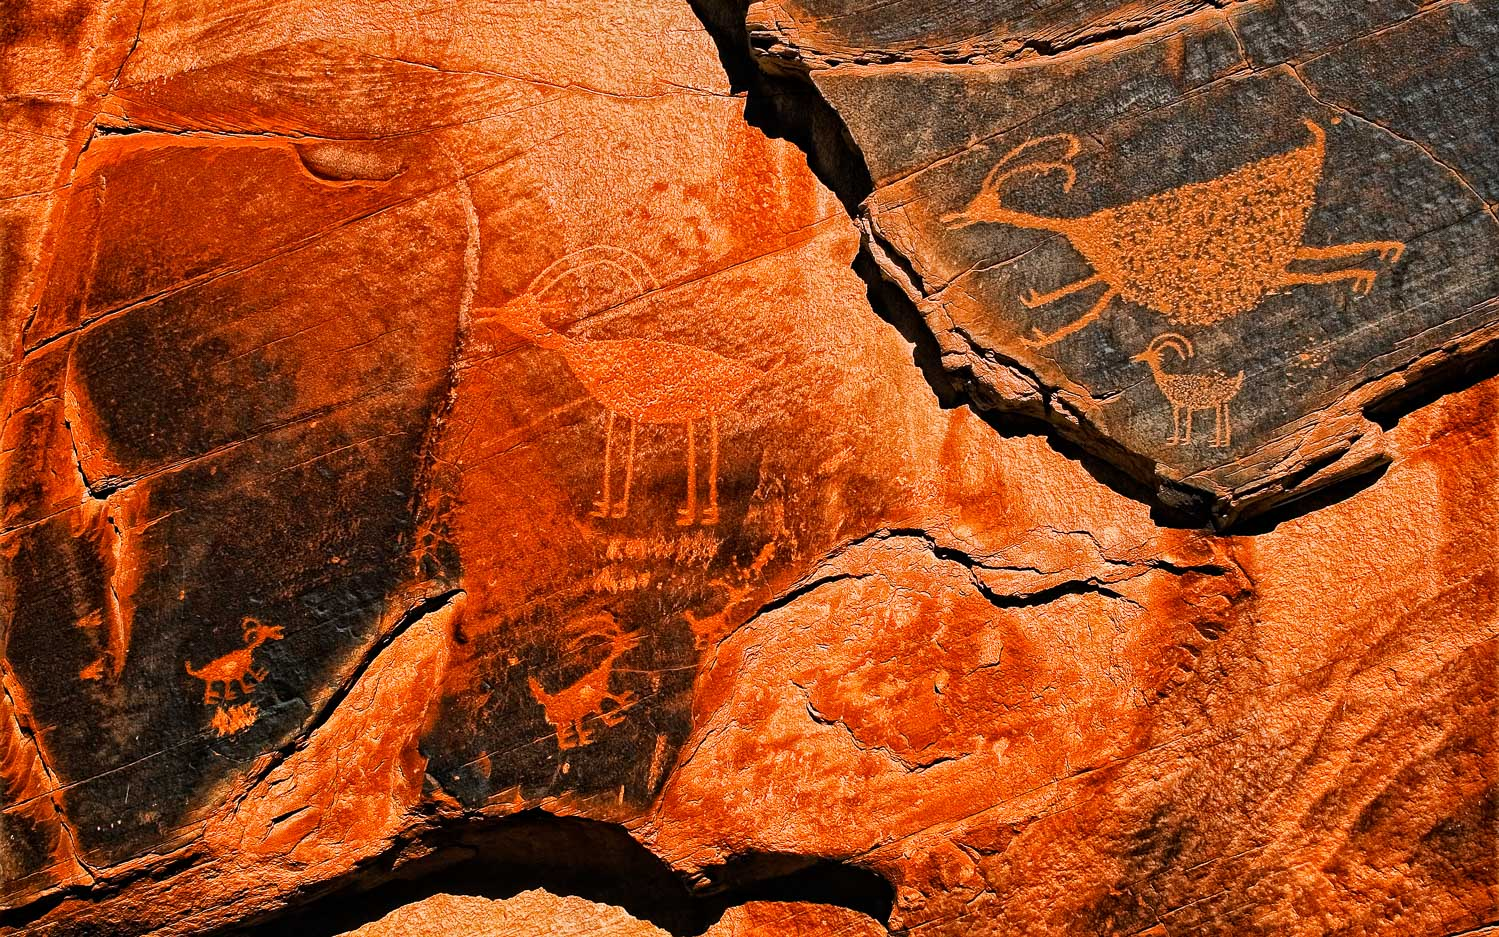 PETROGLYPHS - MONUMENT VALLEY